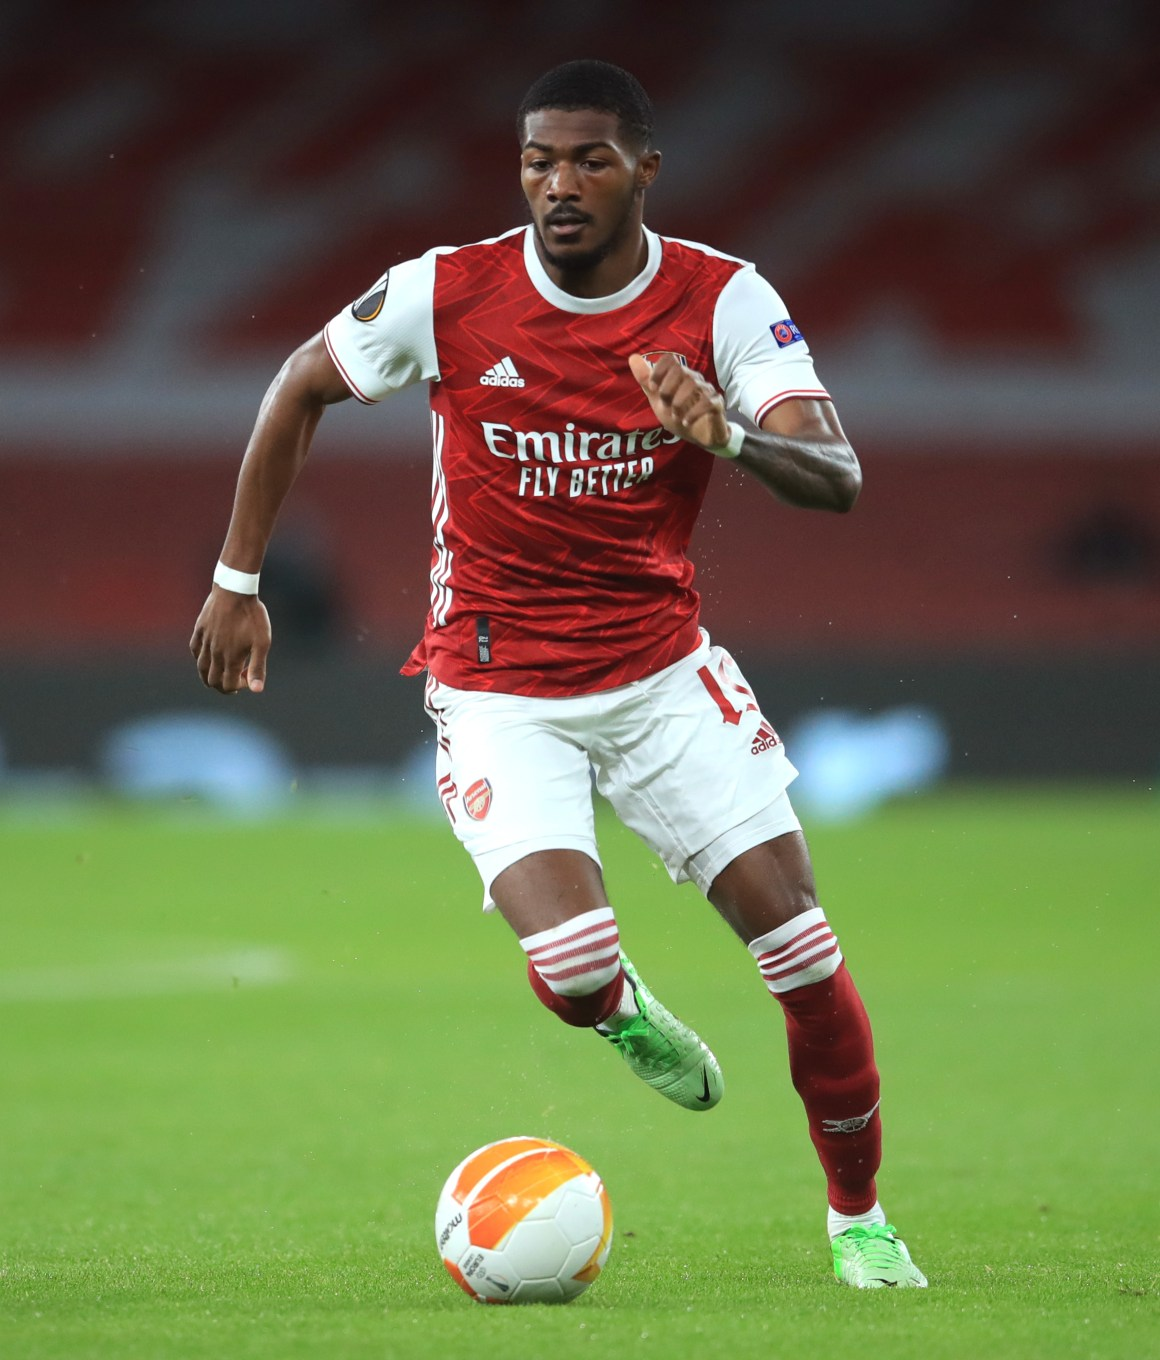 Ainsley Maitland-Niles delighted to see Arsenal's '12th man' back   FourFourTwo